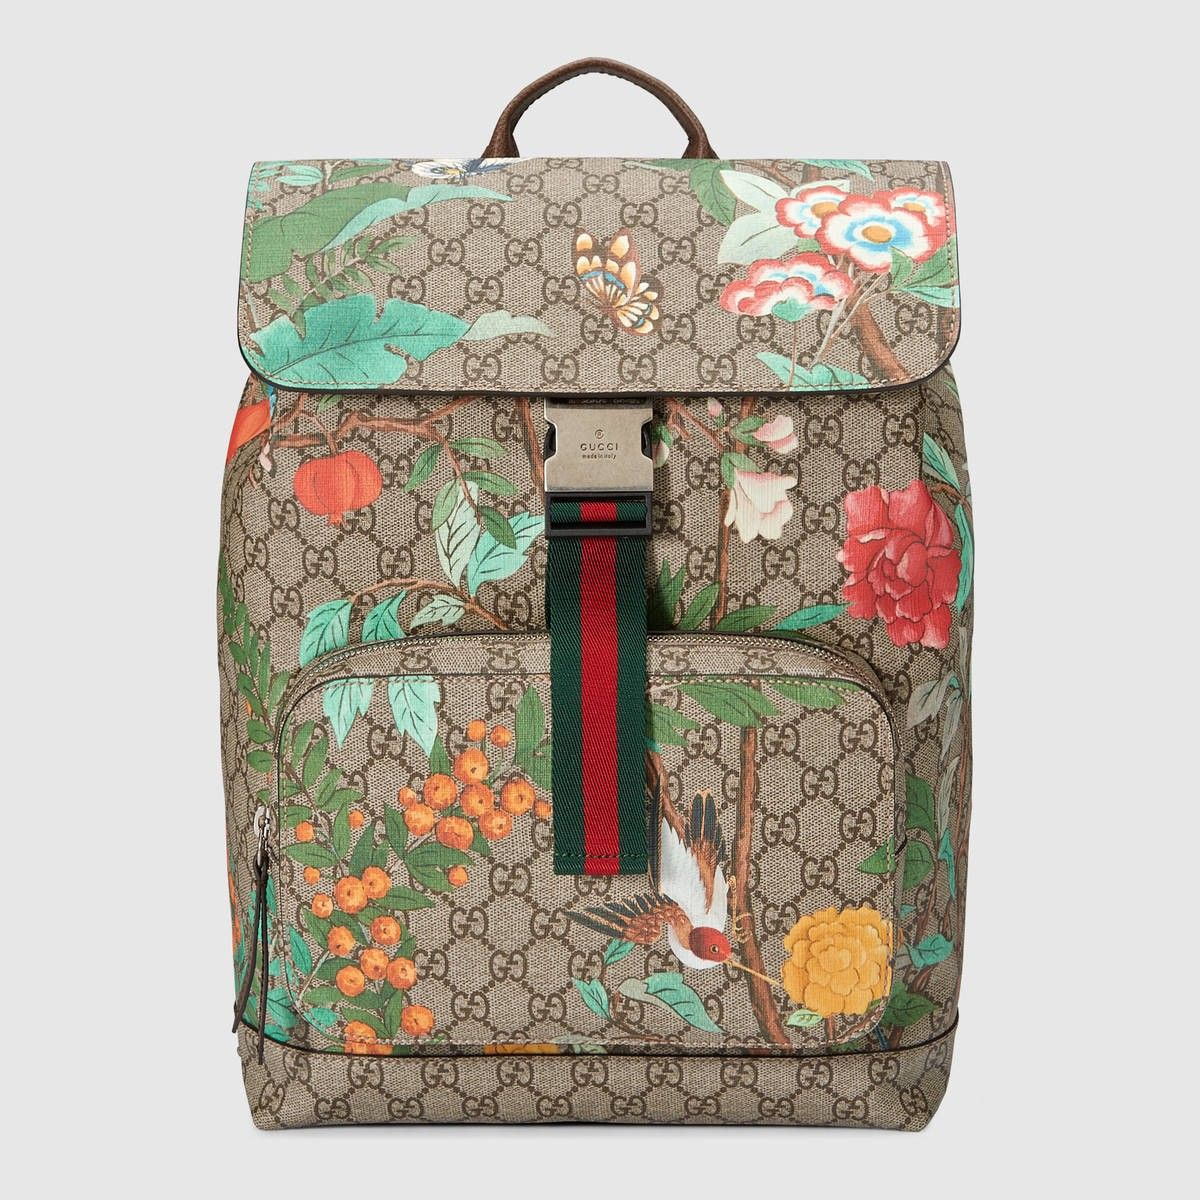 9044d17942bd20 GUCCI Gucci Tian Gg Supreme Backpack - Gg Supreme. #gucci #bags #lining # canvas #backpacks #suede #